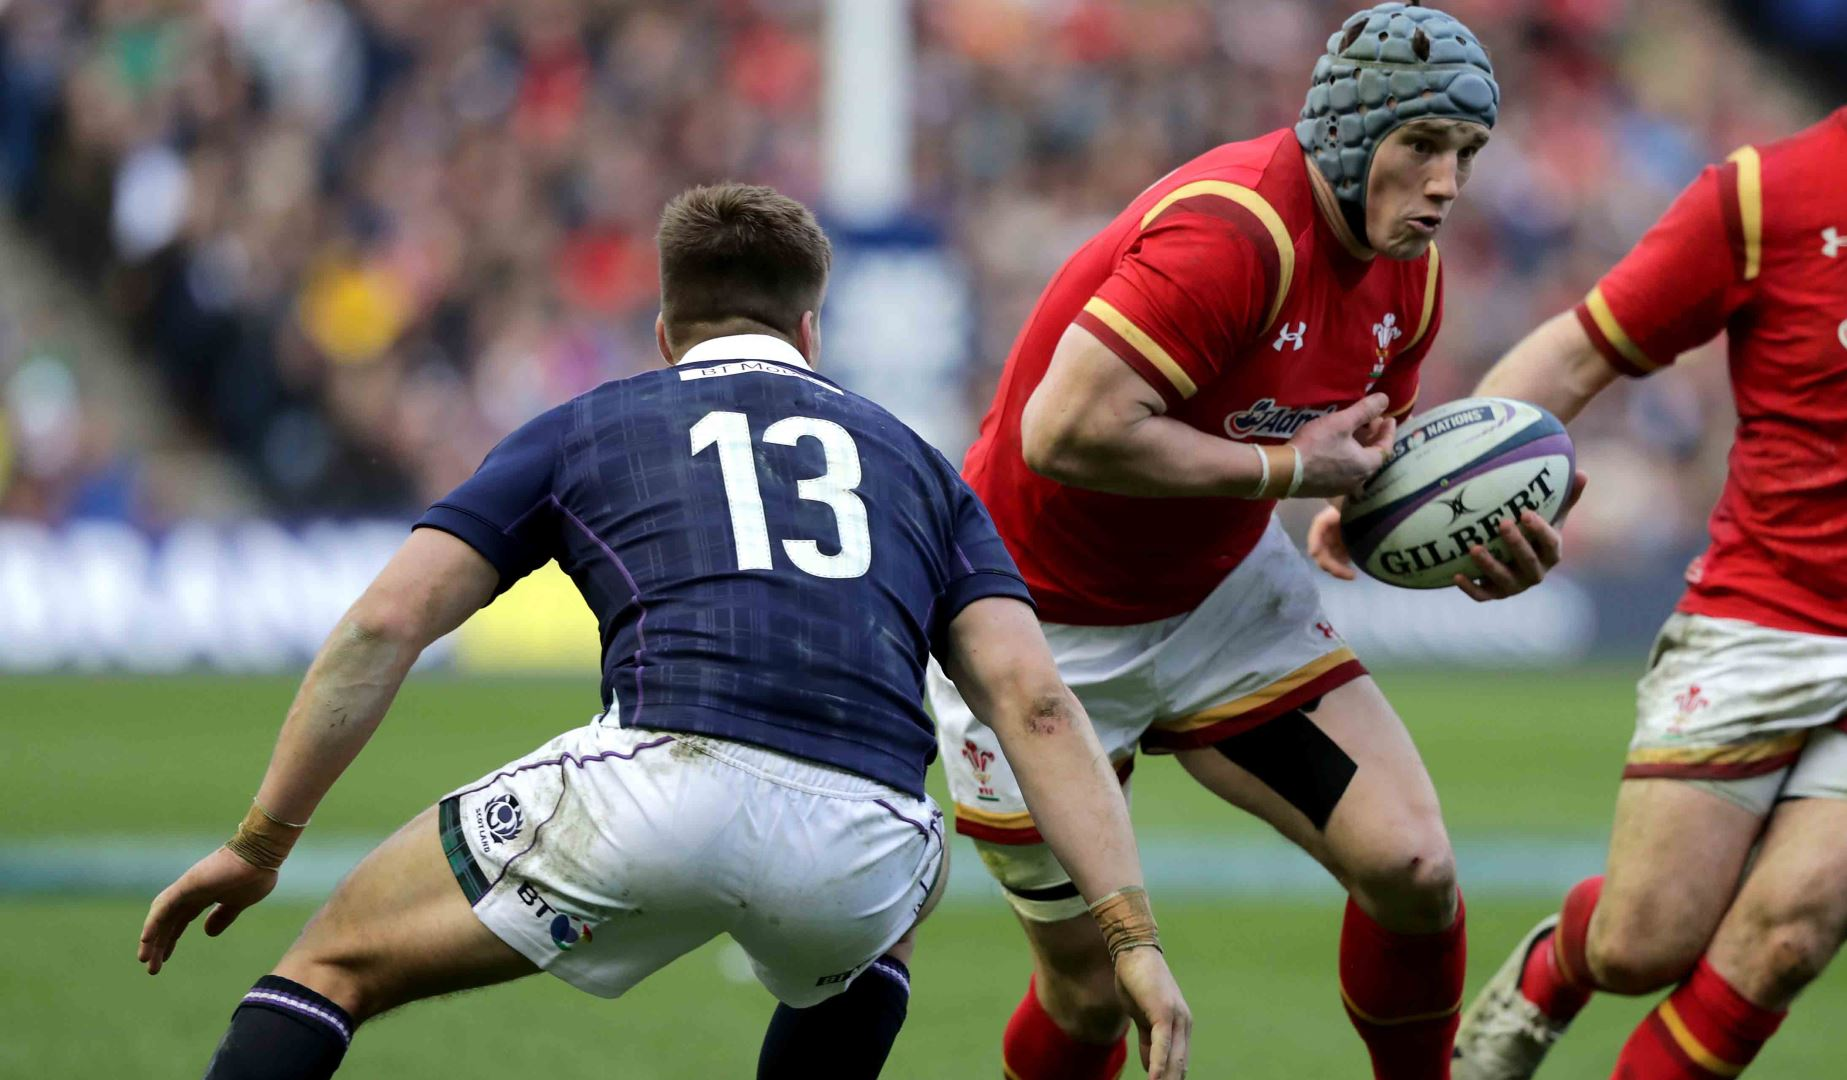 LionsWatch: Gatland is looking very lucky at 13